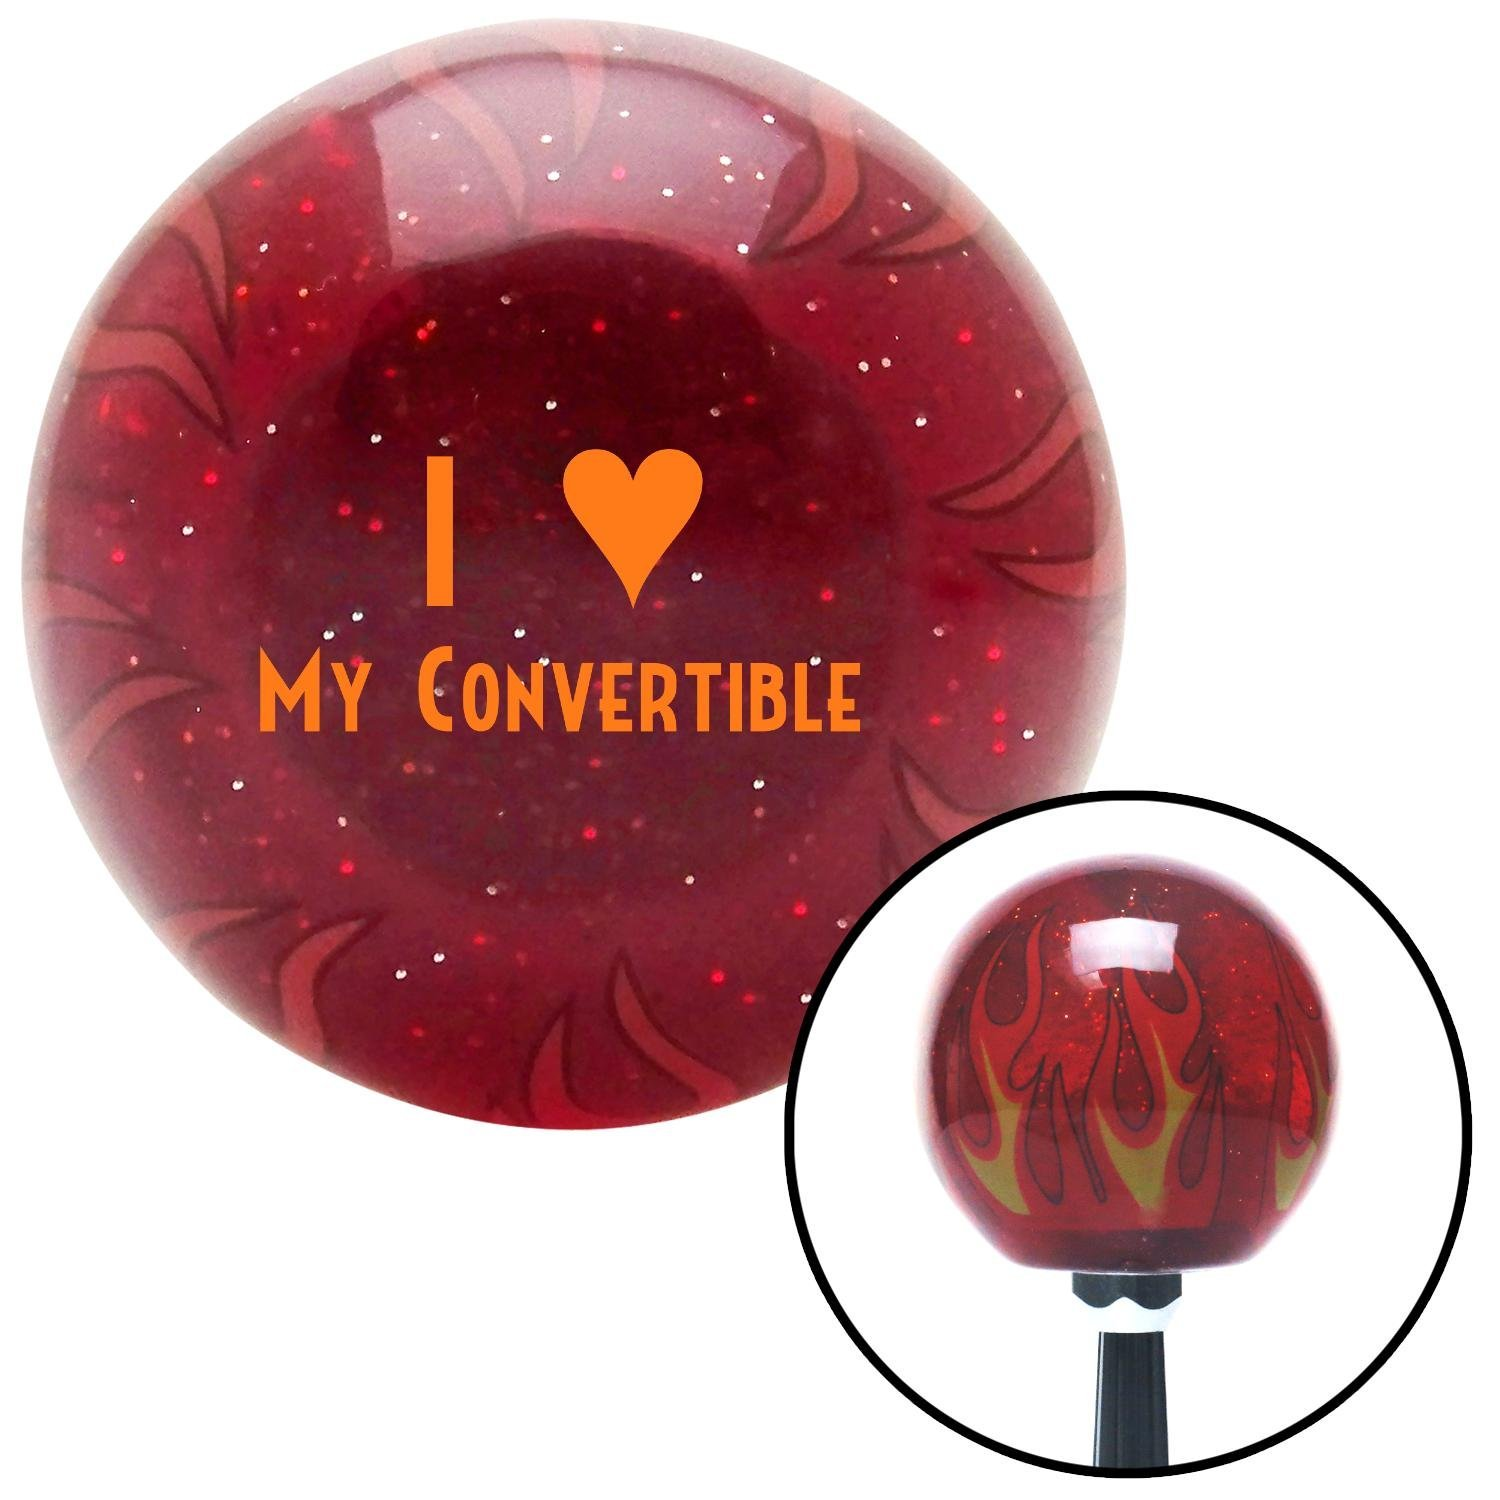 Orange I 3 My Convertible American Shifter 237292 Red Flame Metal Flake Shift Knob with M16 x 1.5 Insert